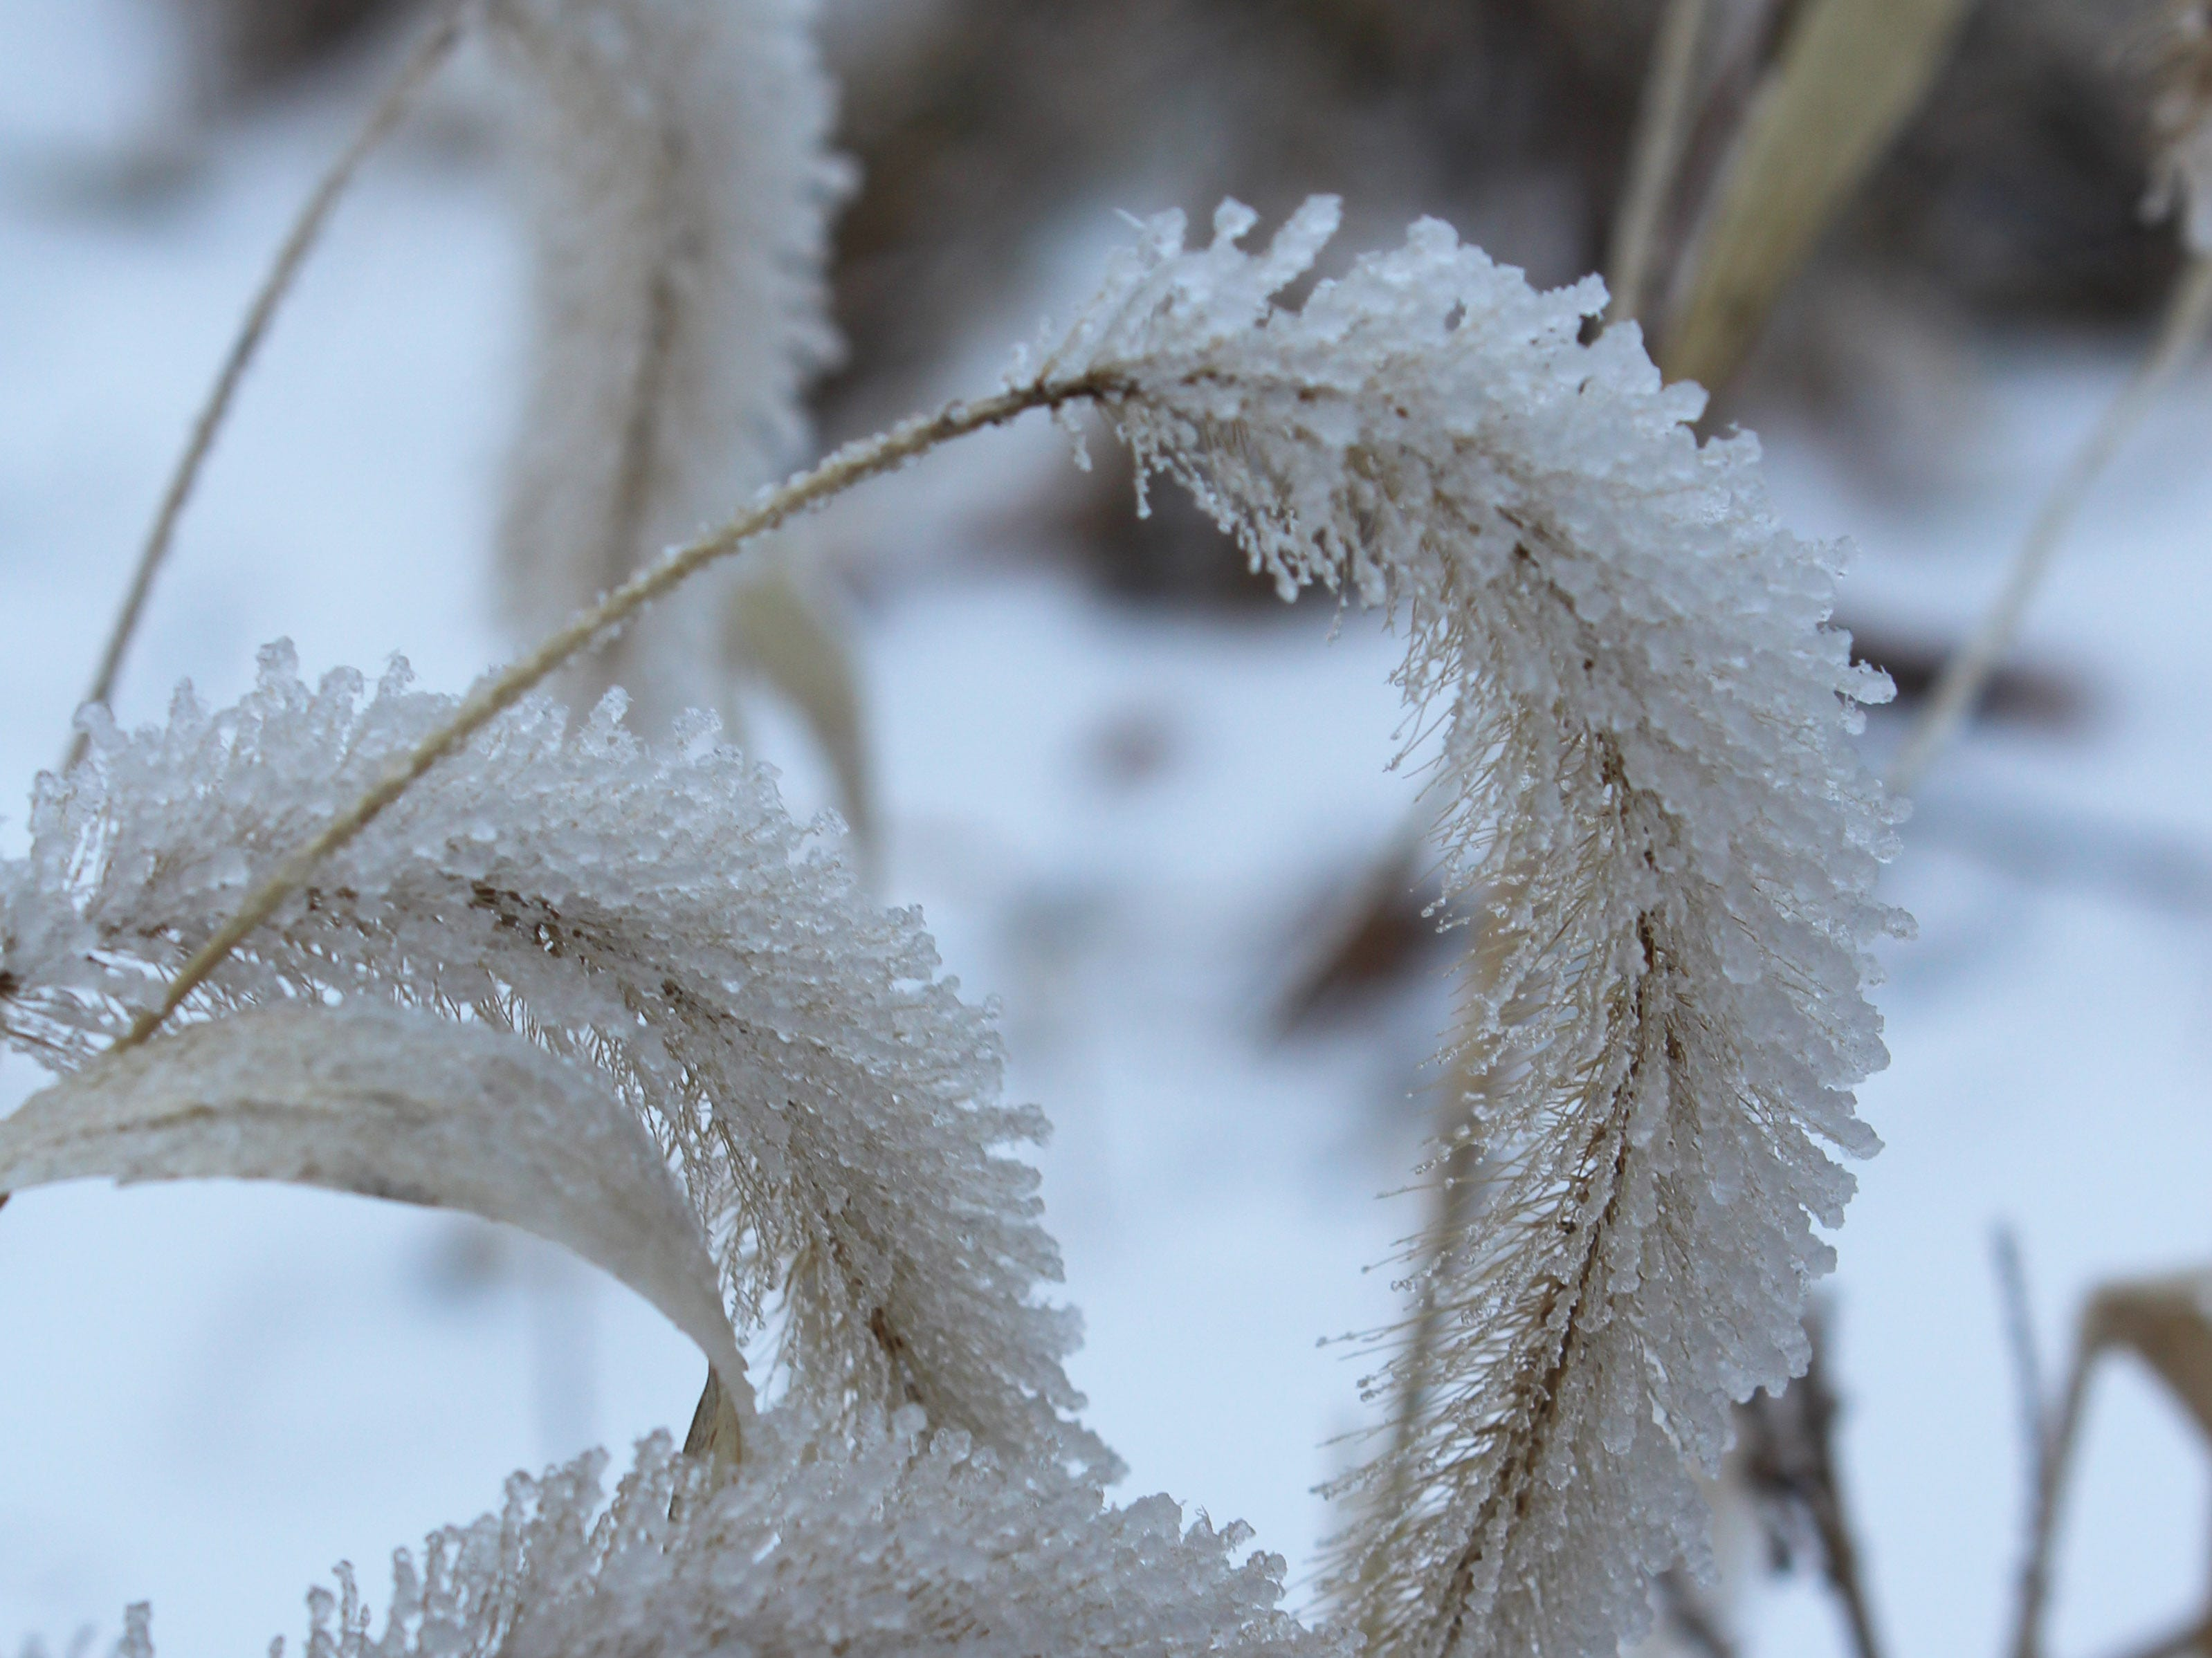 Foxtail grass encased in ice crystals.